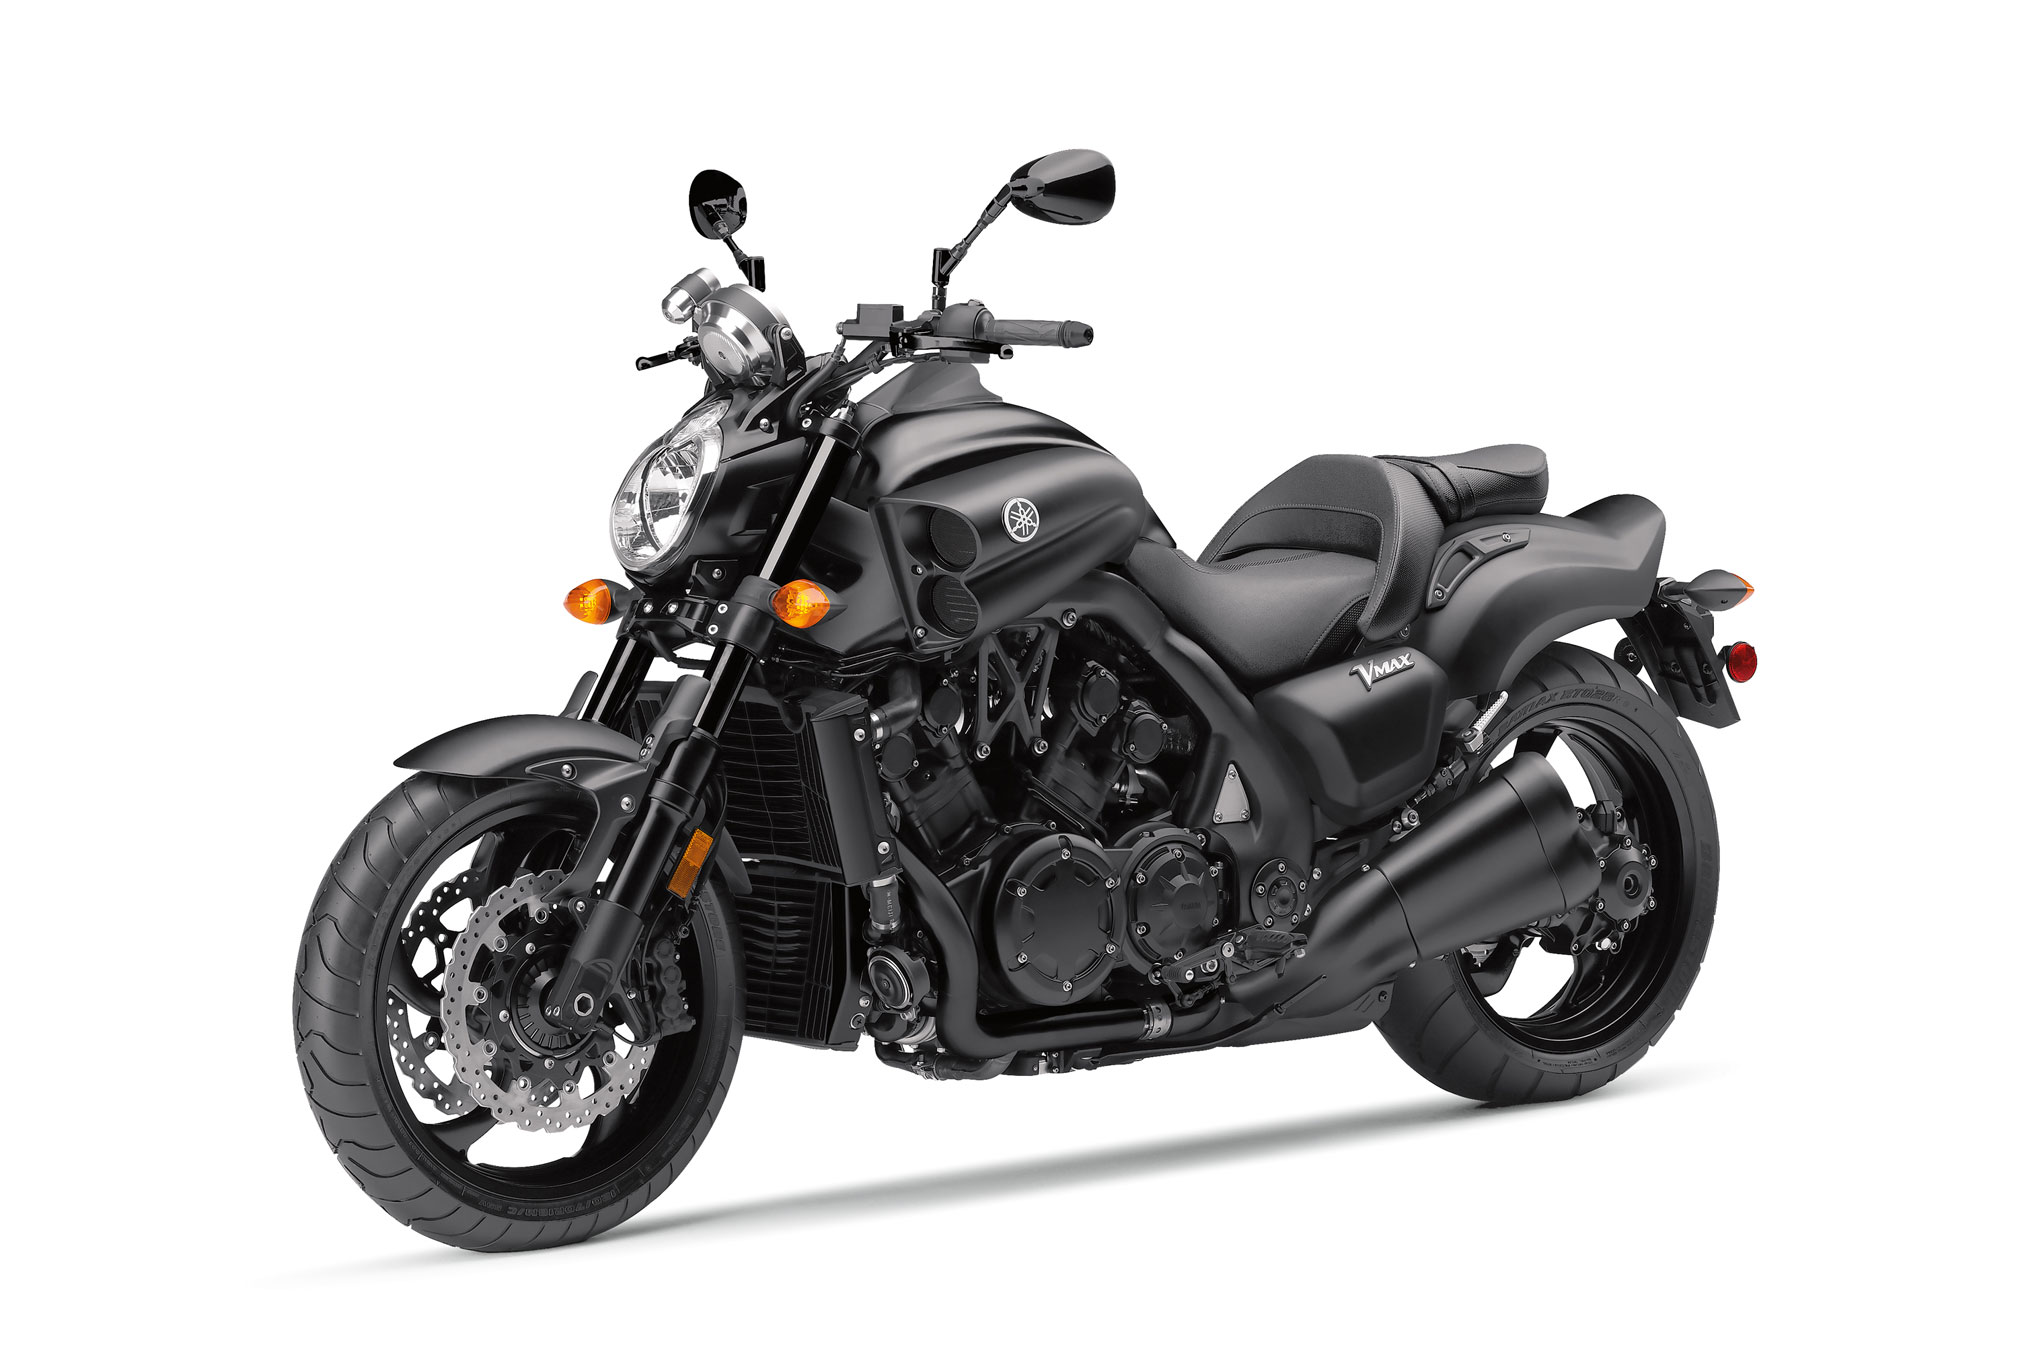 2018 Yamaha VMAX (VMX17) Review • Total Motorcycle